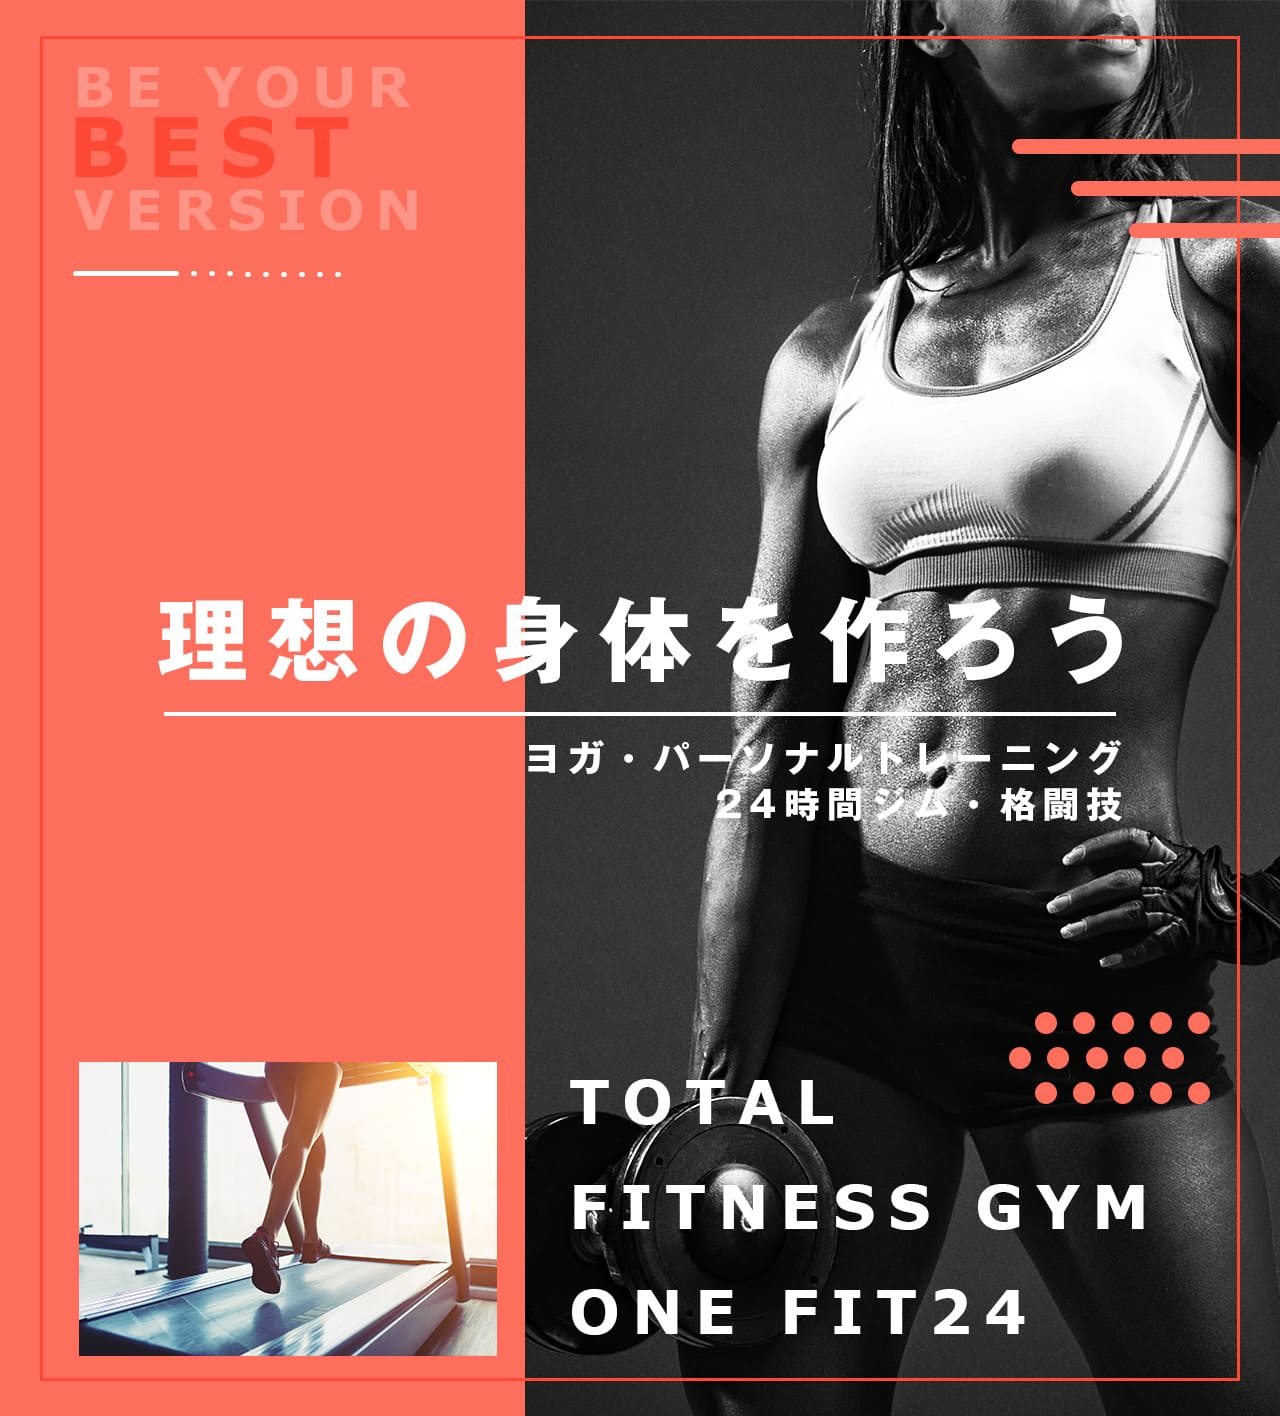 total fitness gym onefit24